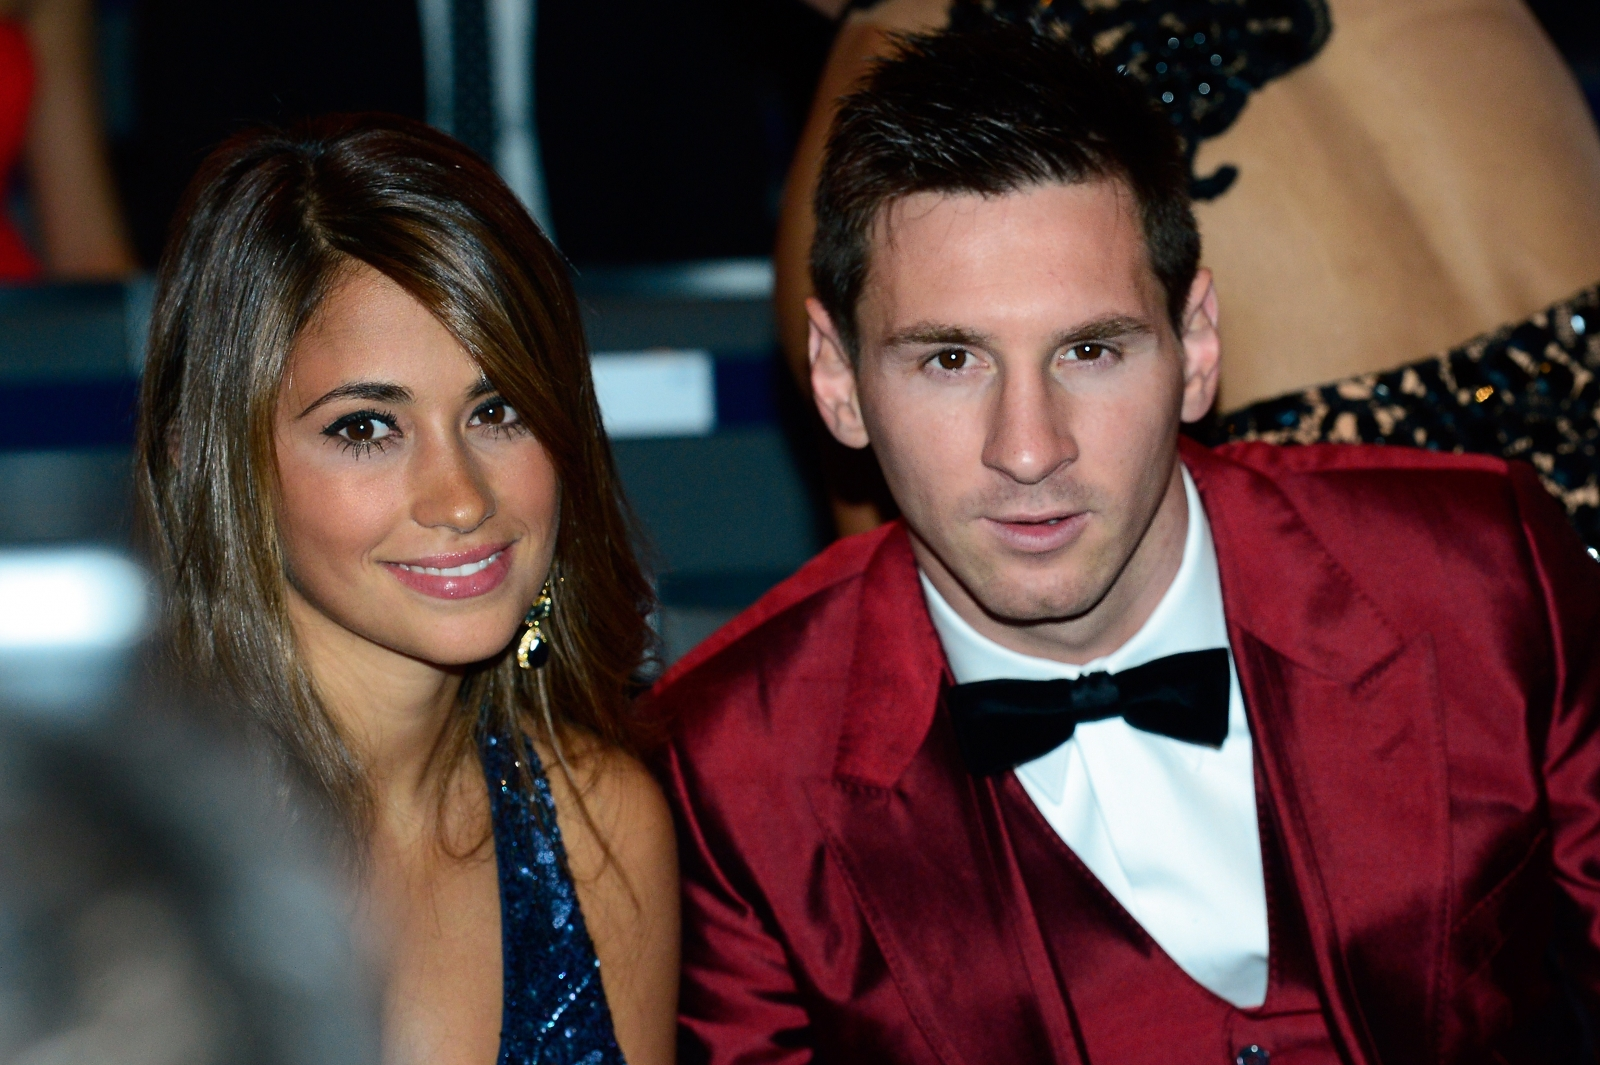 Football star Lionel Messi marries childhood sweetheart in 'wedding of the century'